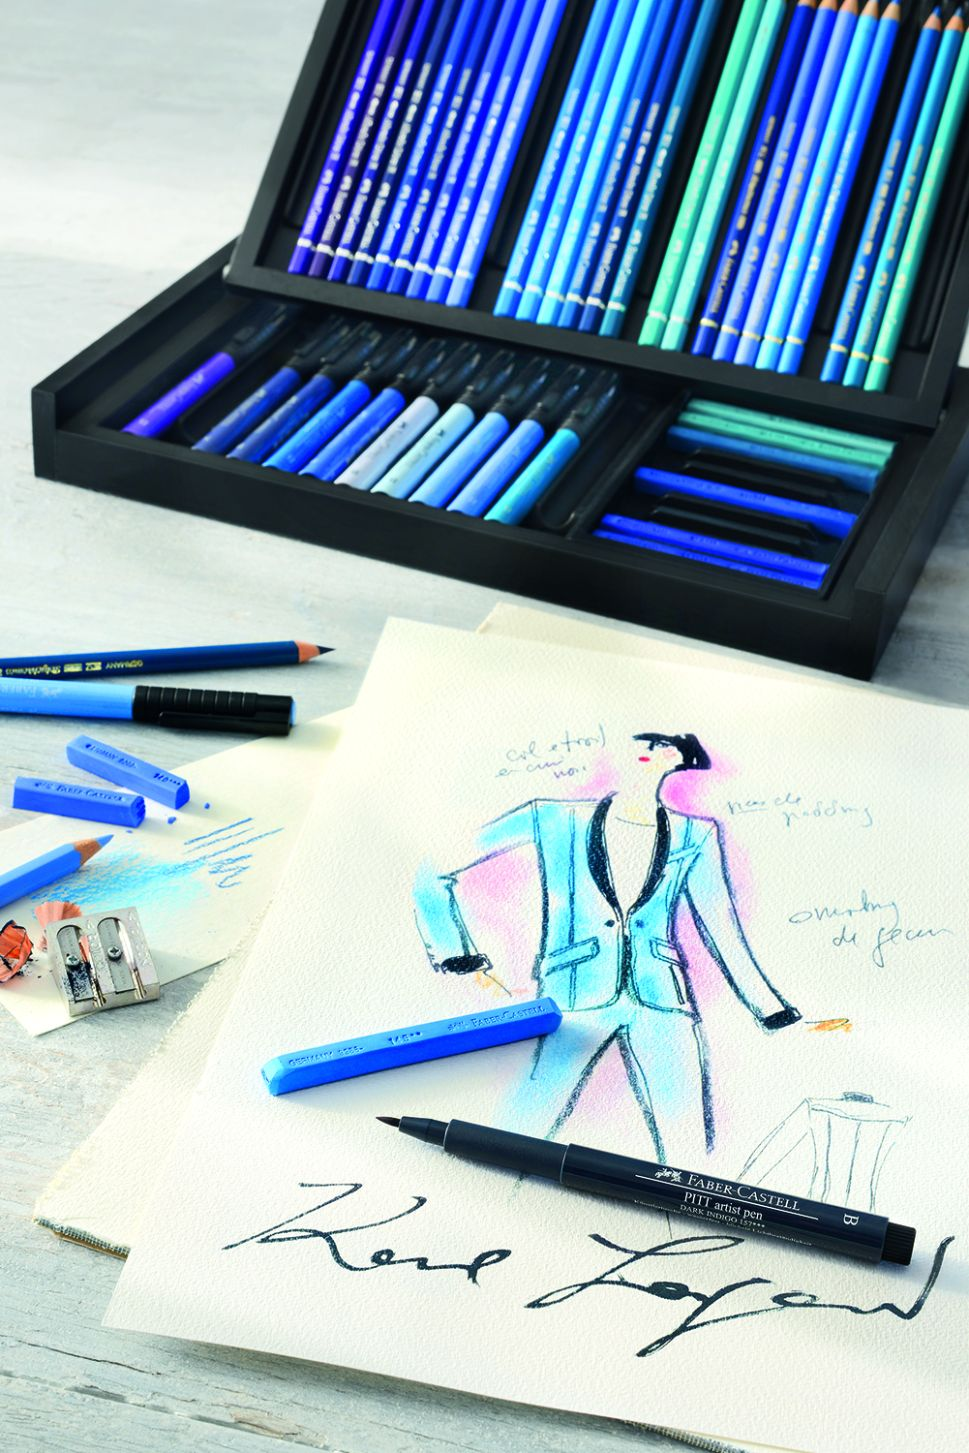 Sketch Like Karl Lagerfeld With This $2,850 Art Box